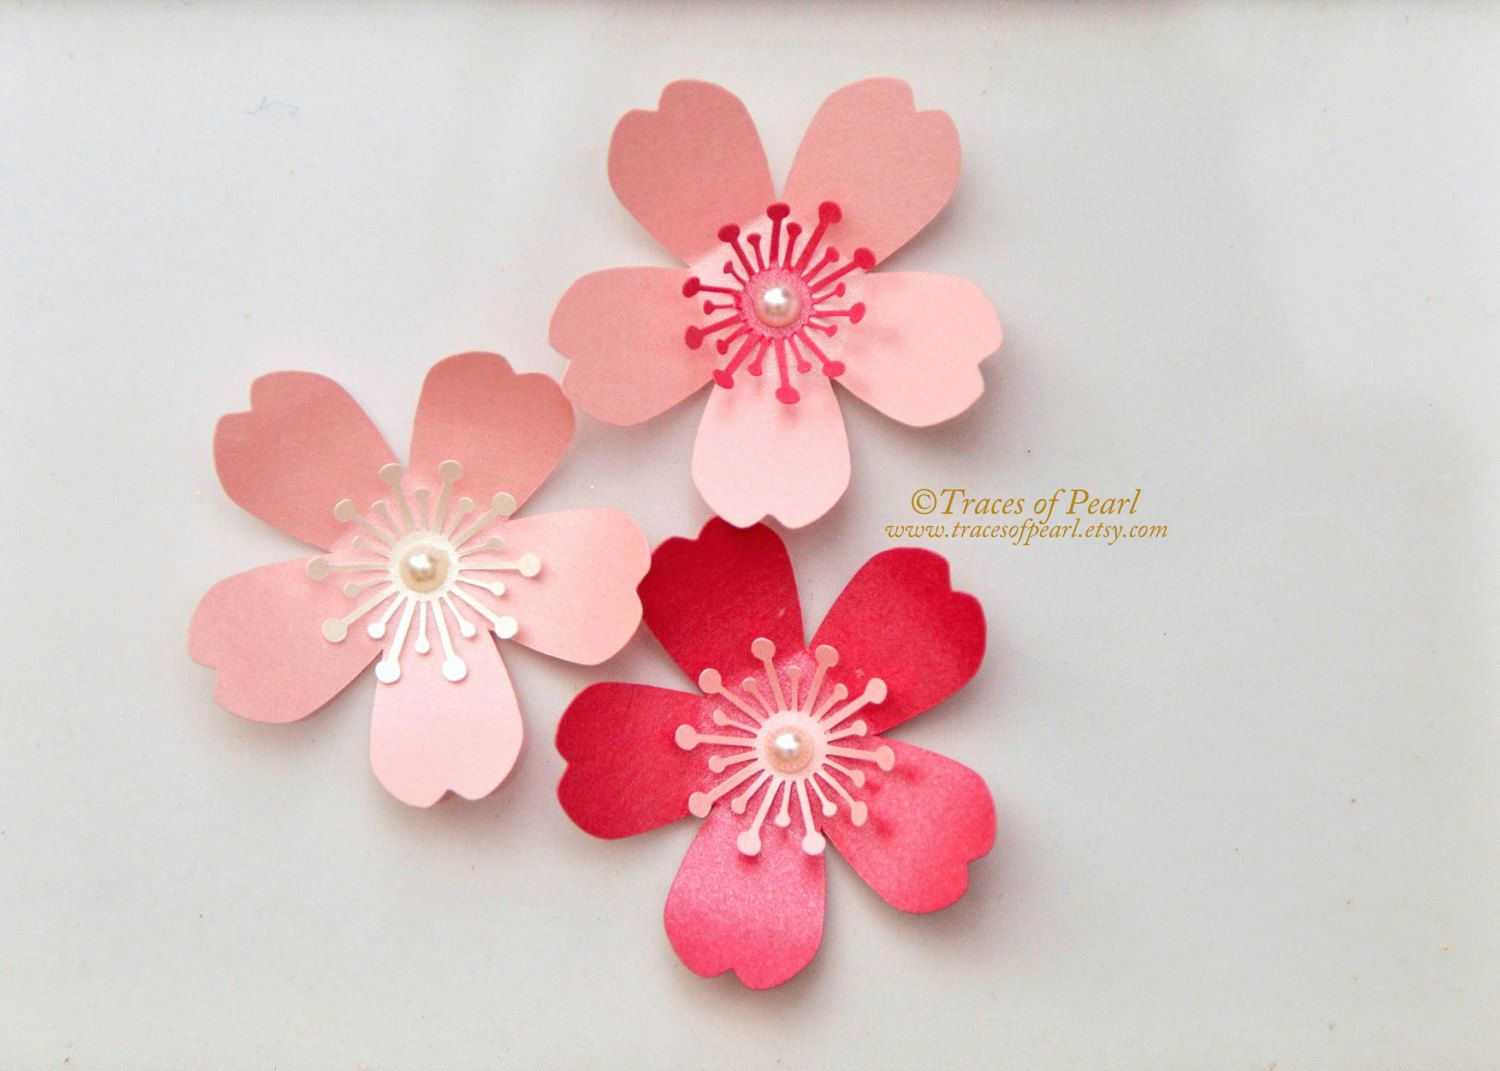 Cherry Blossoms Pearlescent Shimmer Paper Flowers 24 Pcs For Diy Party Decor Crafting Sprin Cherry Blossom Party Cherry Blossom Theme Paper Flower Template